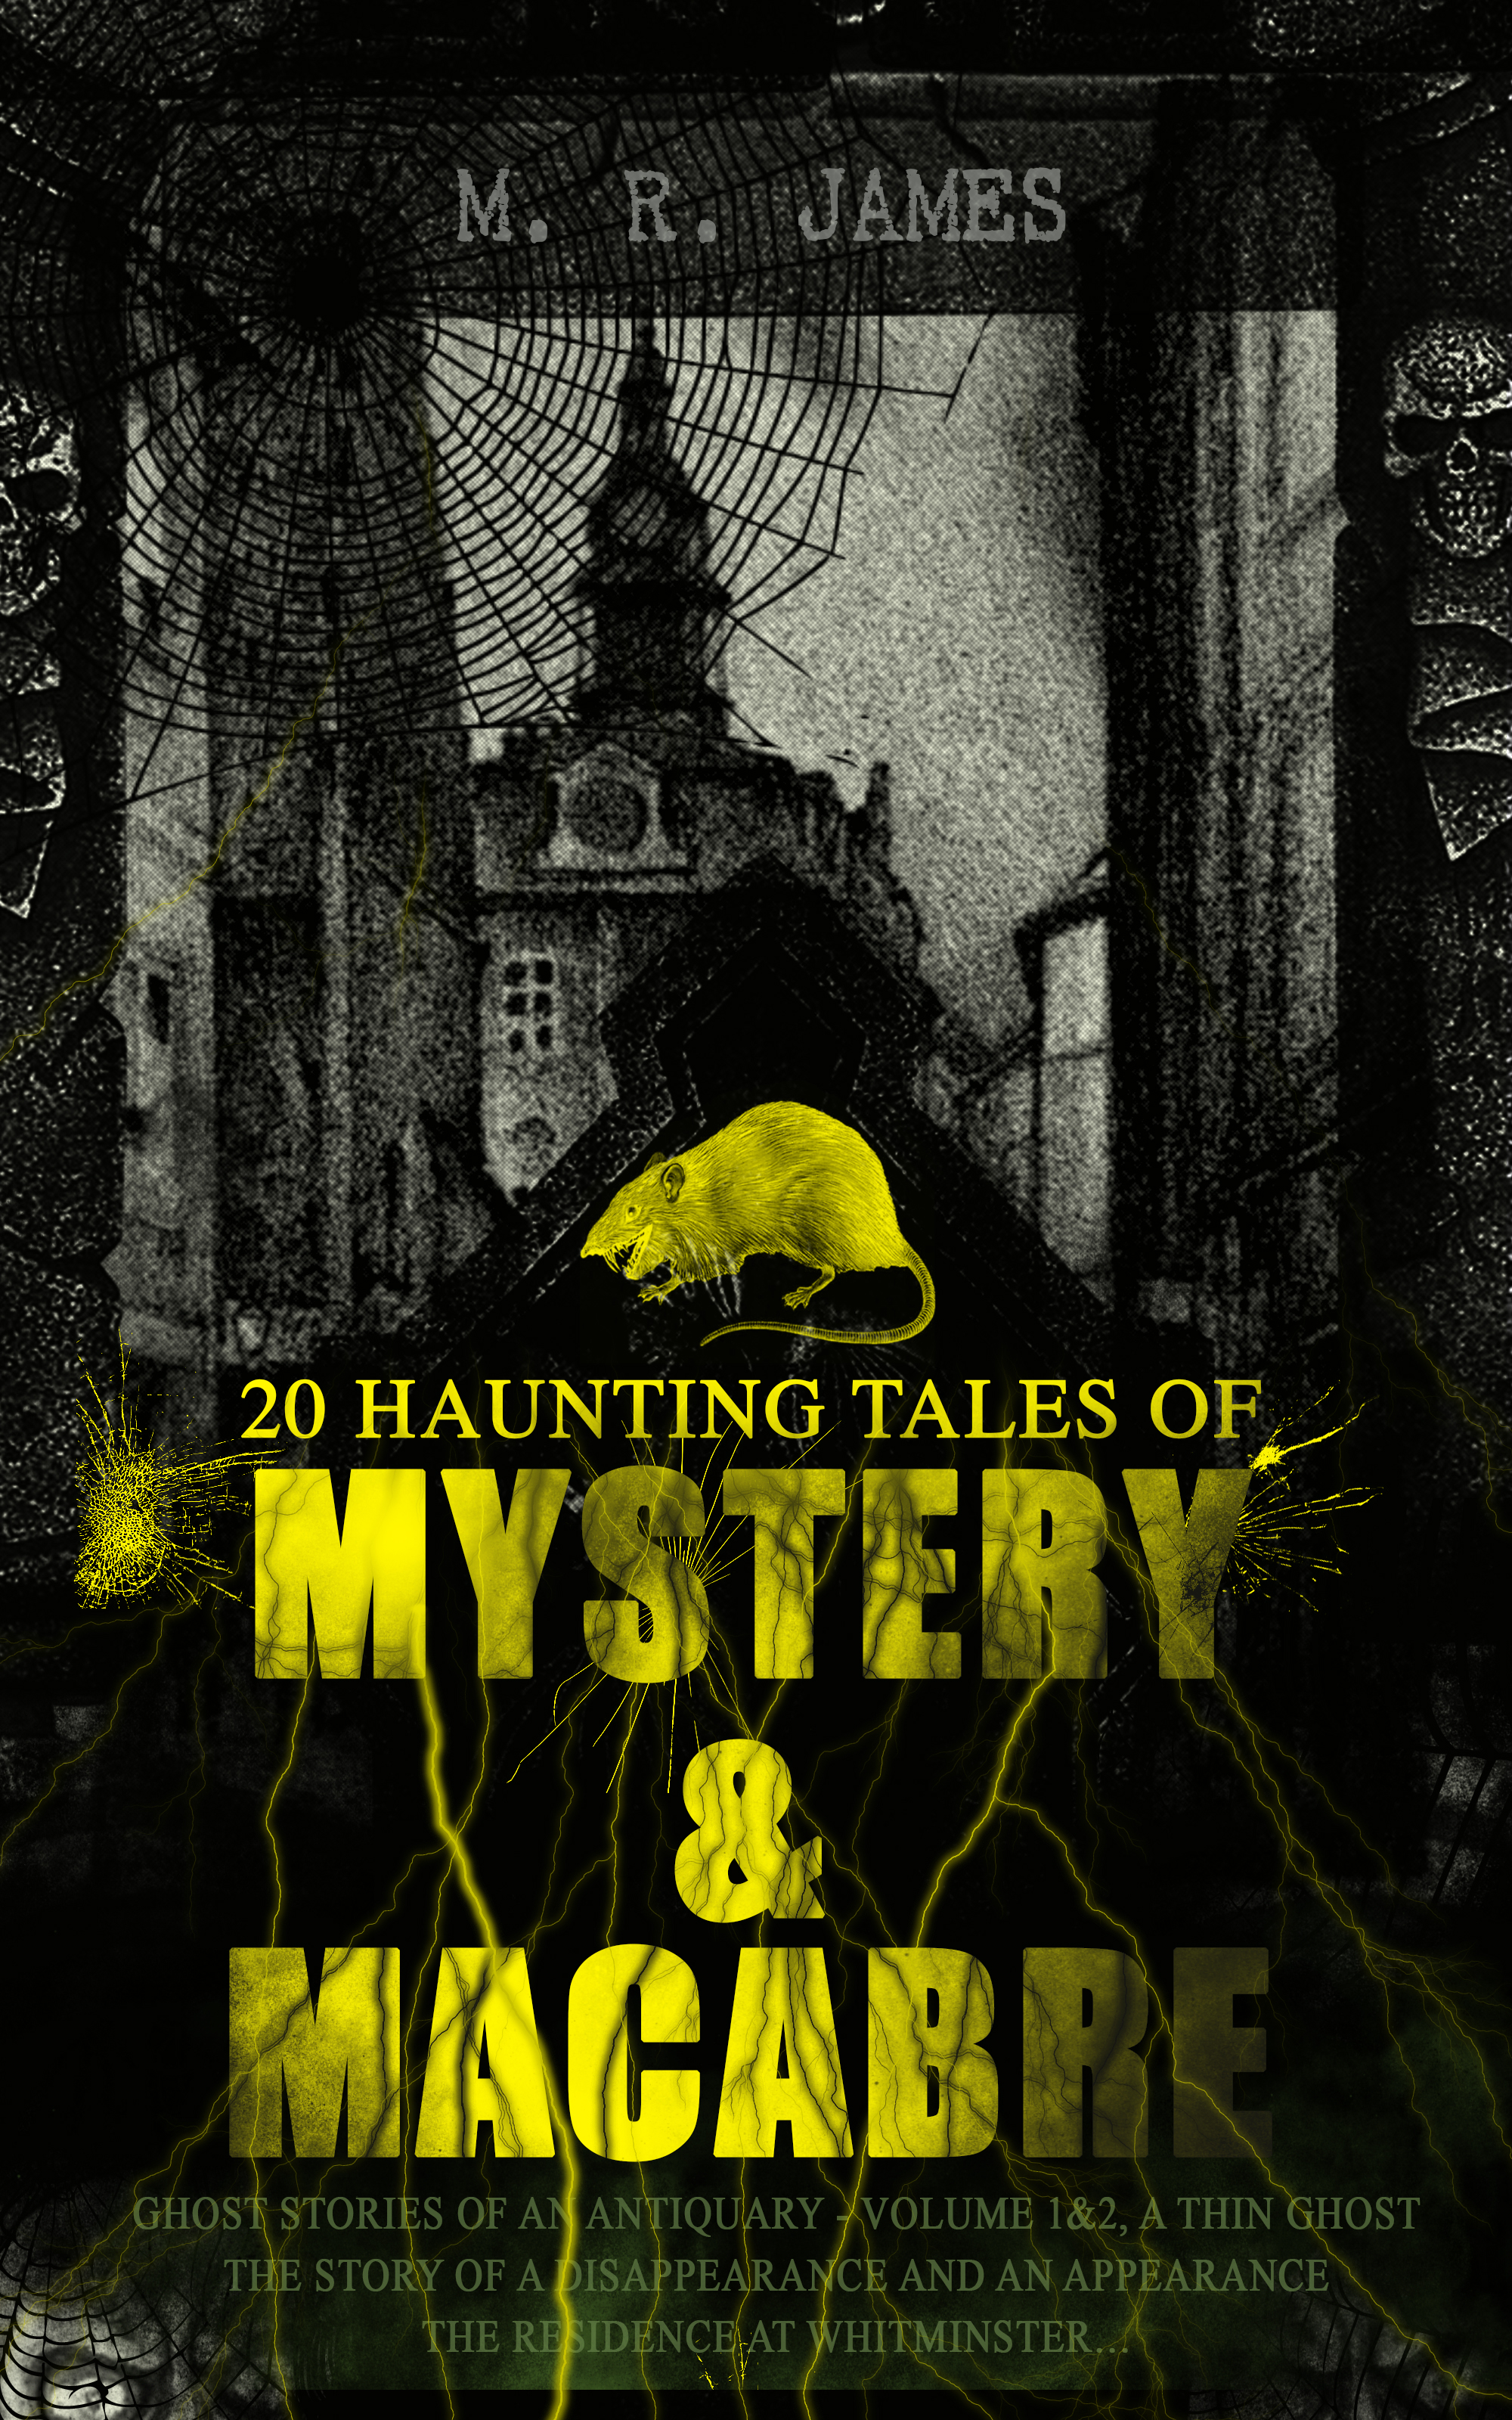 M. R. James 20 HAUNTING TALES OF MYSTERY & MACABRE: Ghost Stories of an Antiquary - Volume 1&2, A Thin Ghost, The Story of a Disappearance and an Appearance, The Residence at Whitminster…